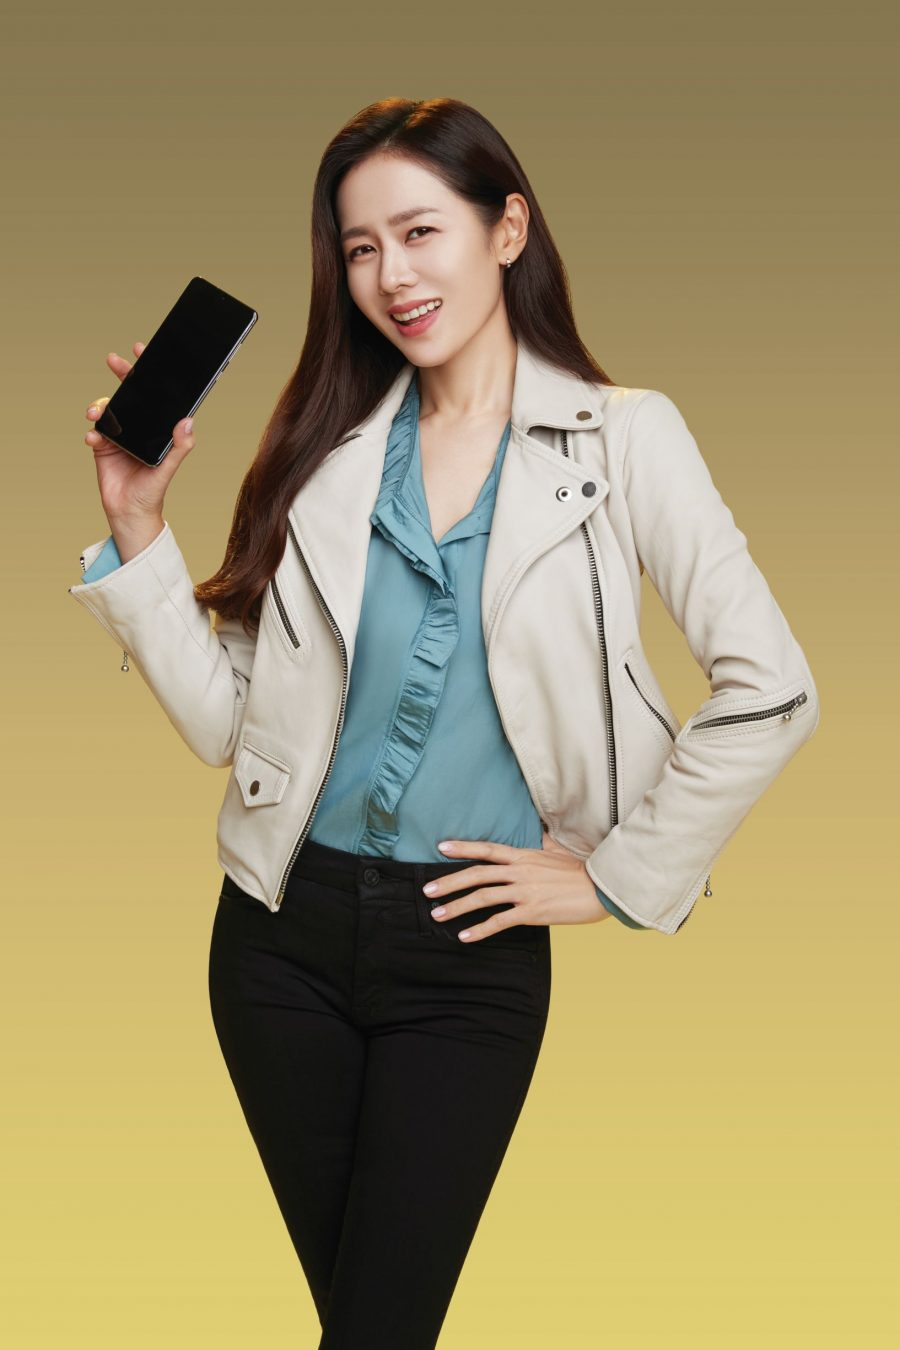 Son Ye-jin is Smart endorser, with Hyun Bin. (Photo from Smart)